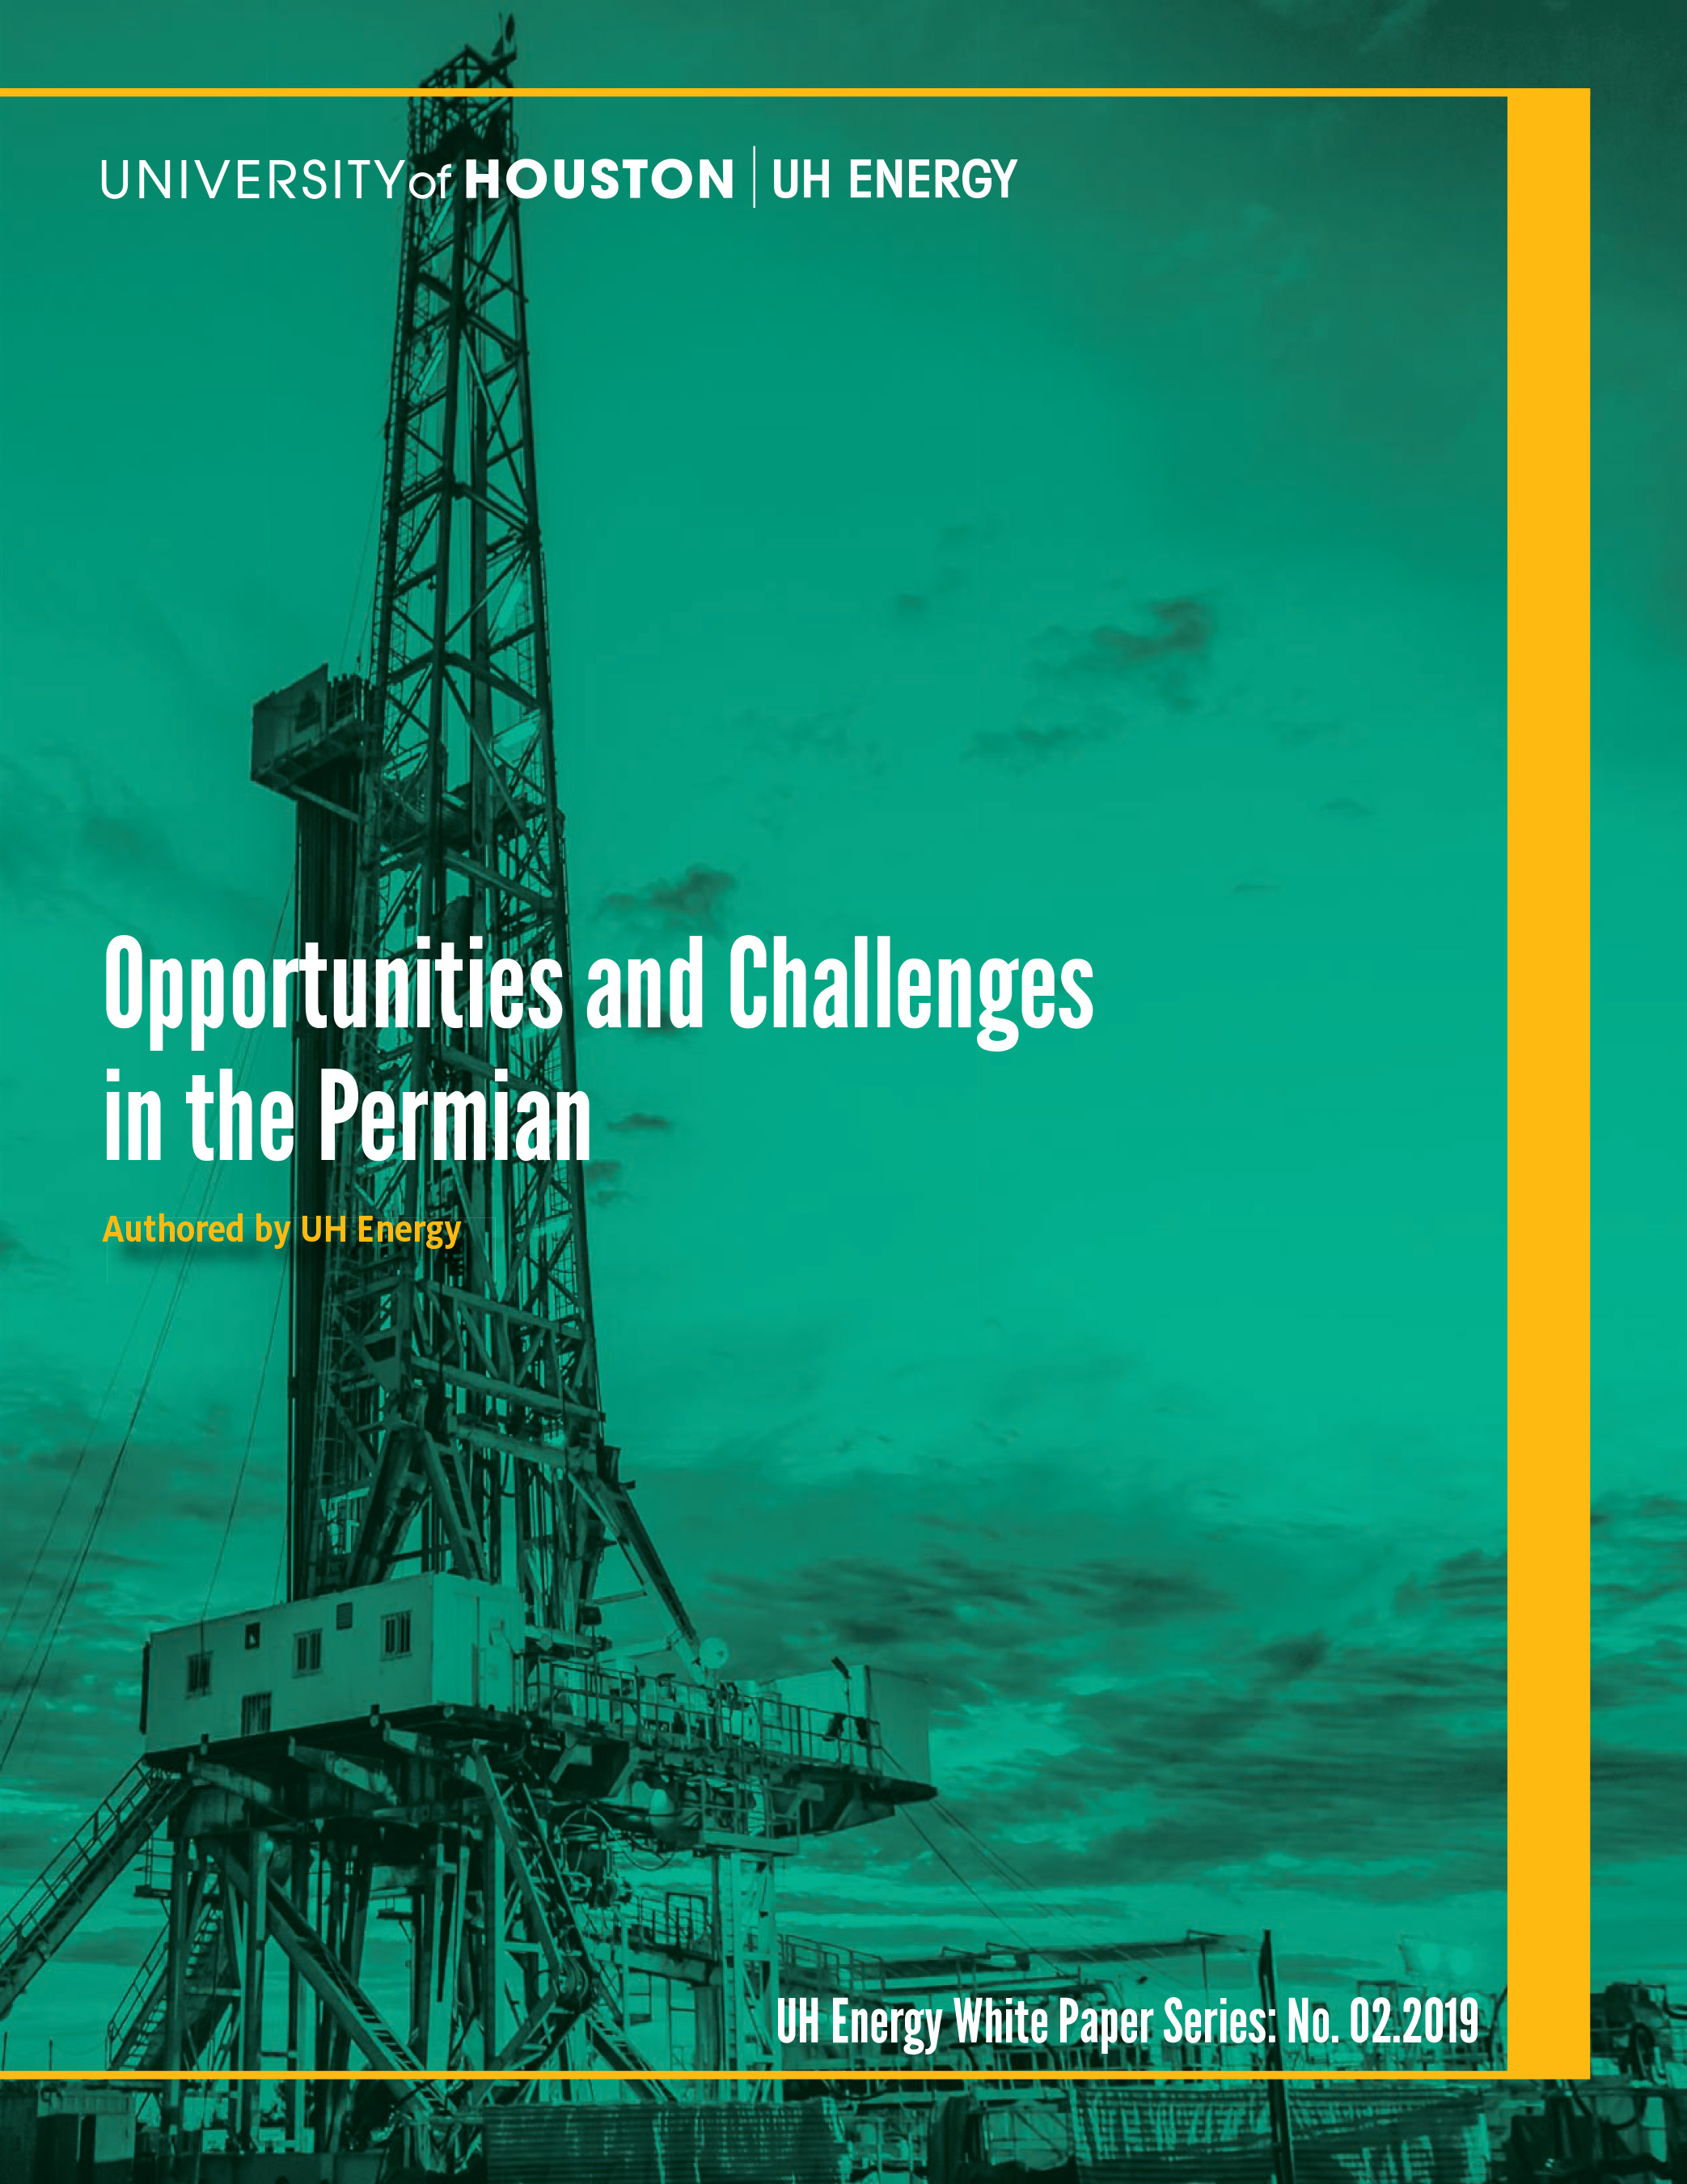 Opportunities and Challenges in the Permian, a white paper authored by UH Energy and commissioned by Hastings Equity Partners